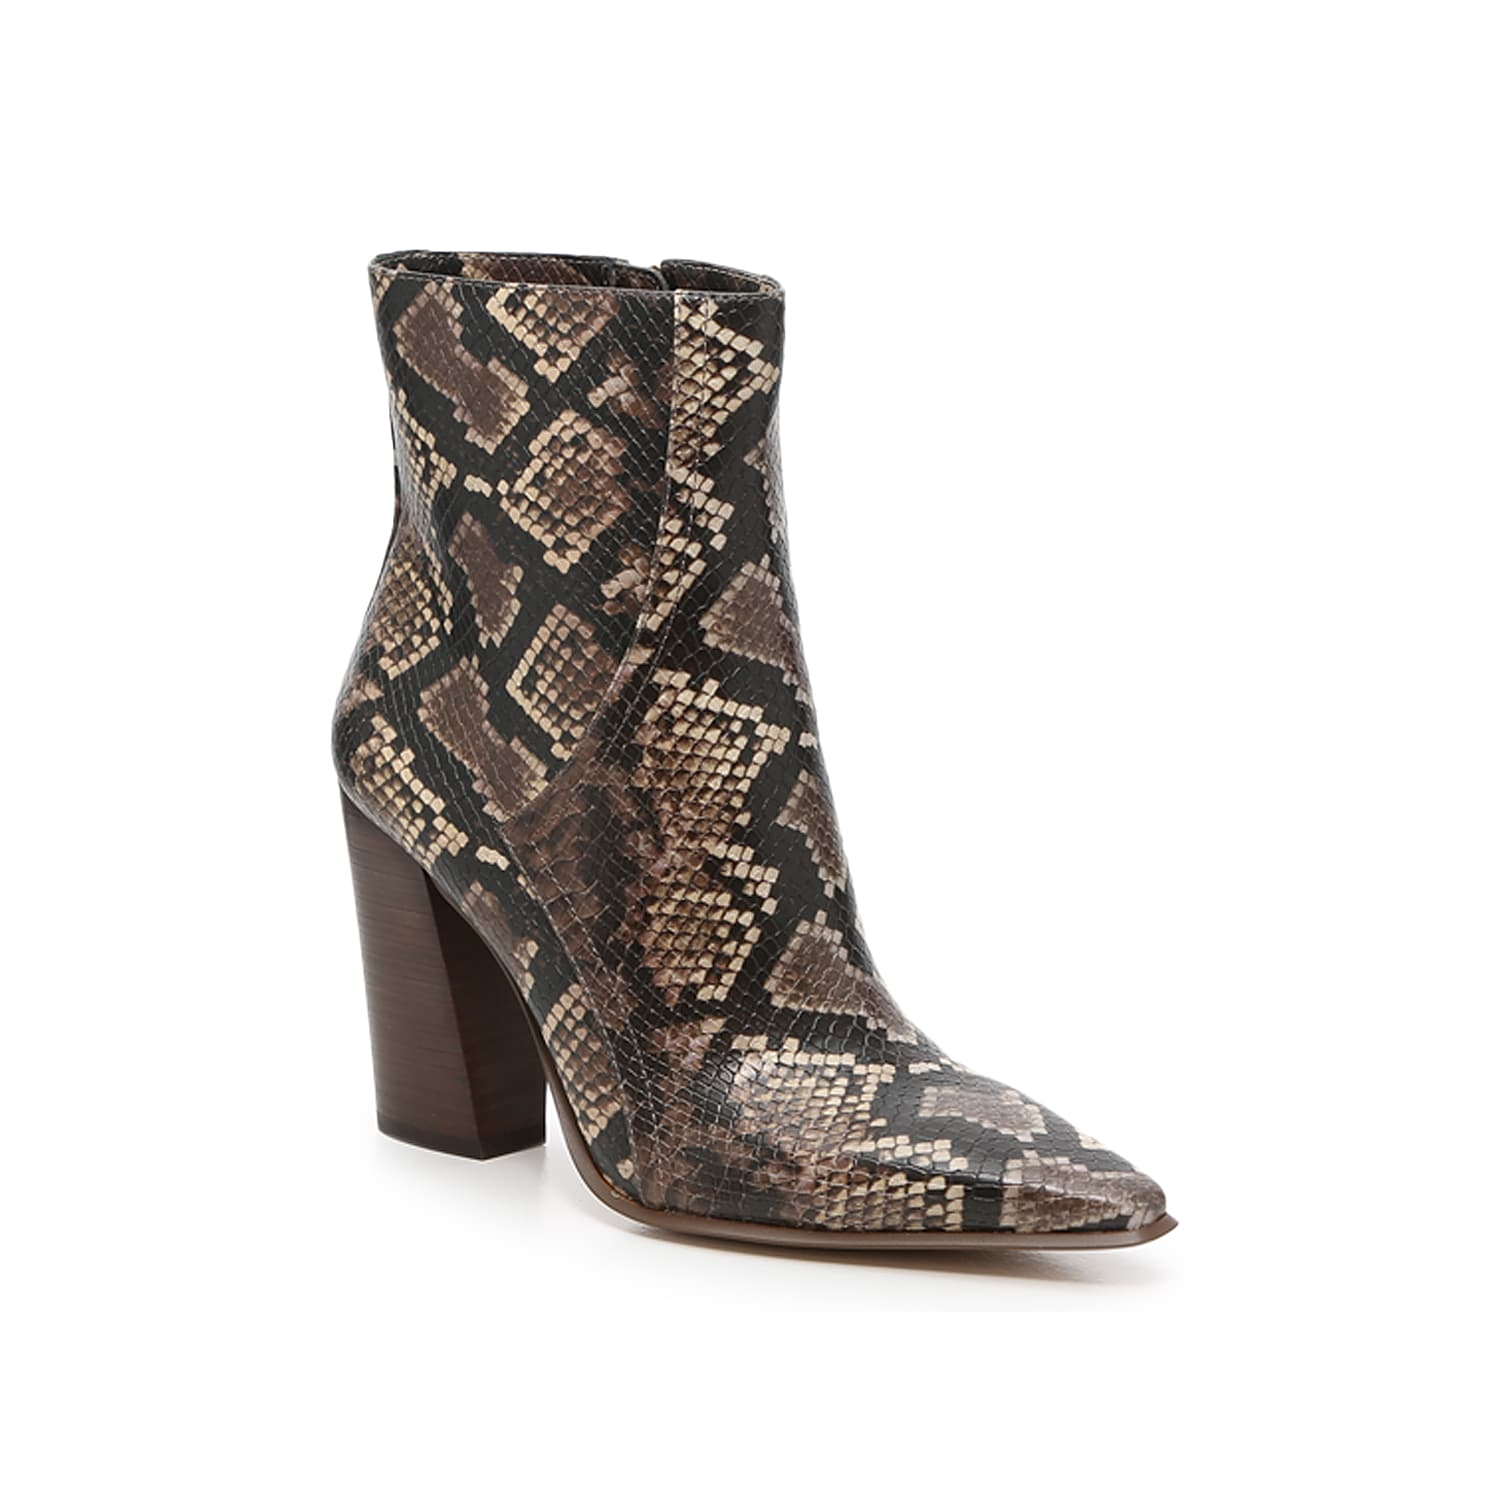 Take your ankle bootie collection over the top with this exclusive pair from JLO Jennifer Lopez. The Dorindah makes a statement with an angled outline, elongated toe, and slanted heel that defies fashion limits. Click here for Boot Measuring Guide.